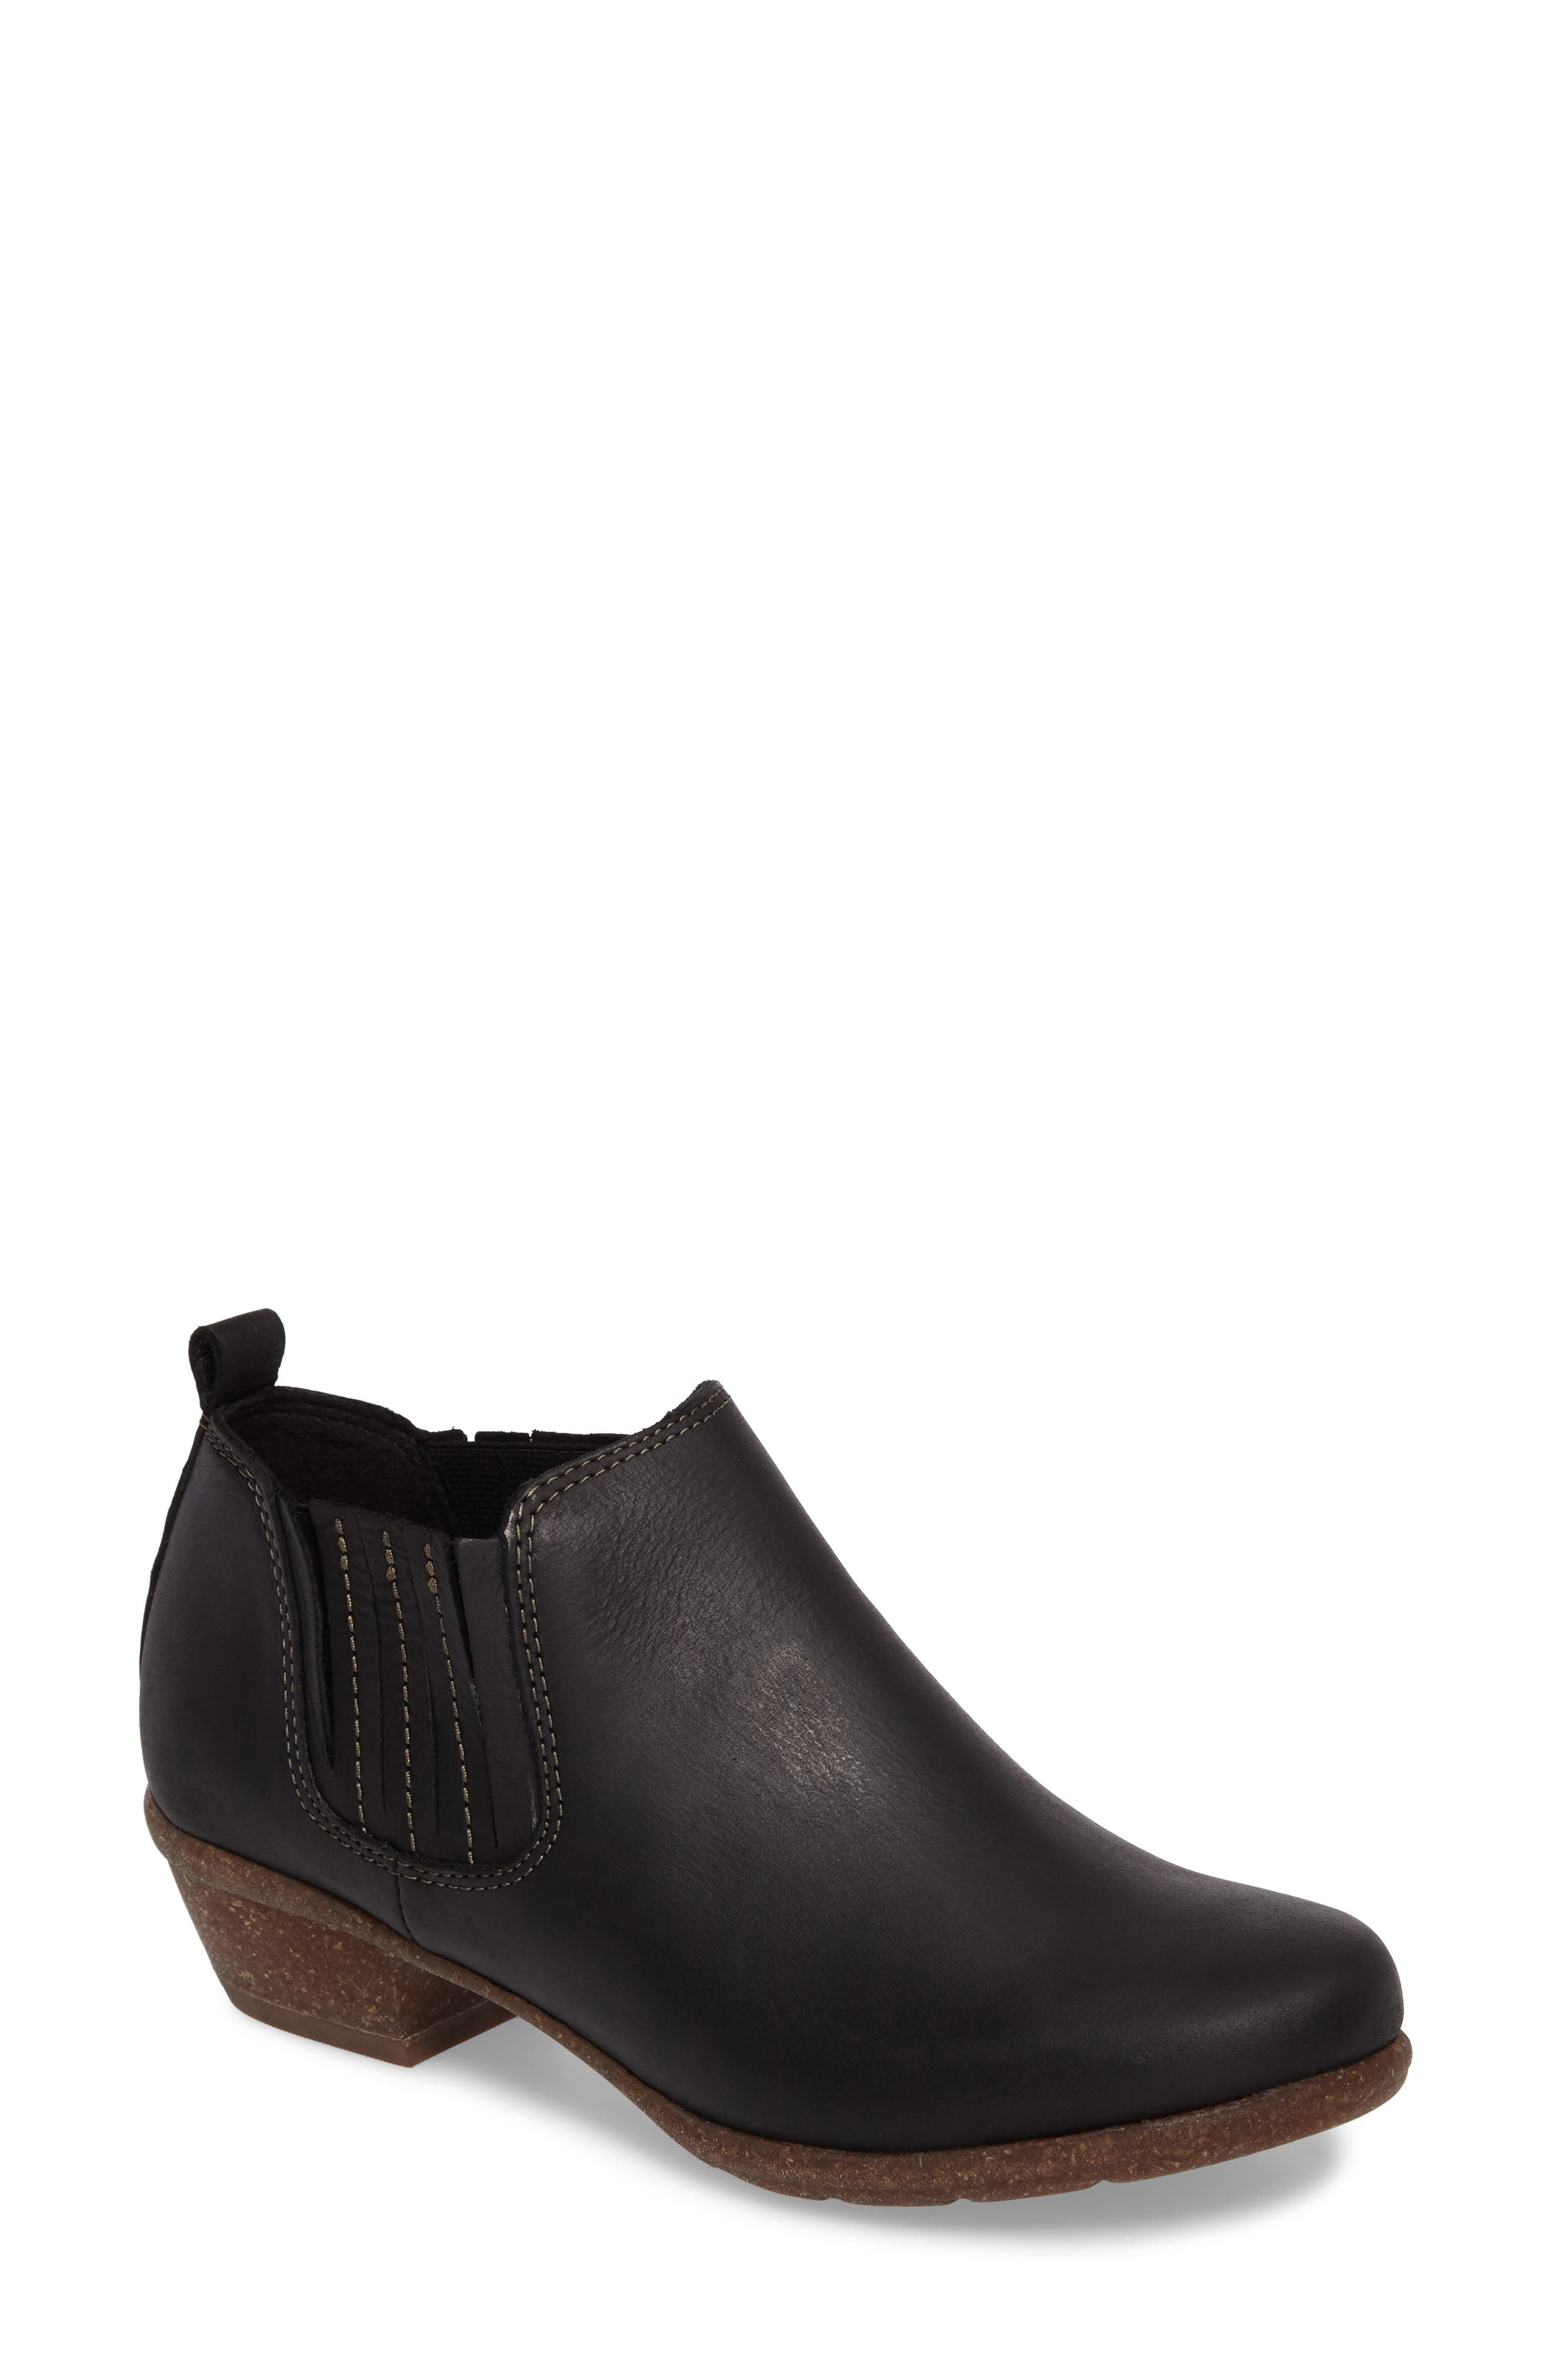 Wilrose Jade Low Chelsea Bootie,                             Main thumbnail 1, color,                             001